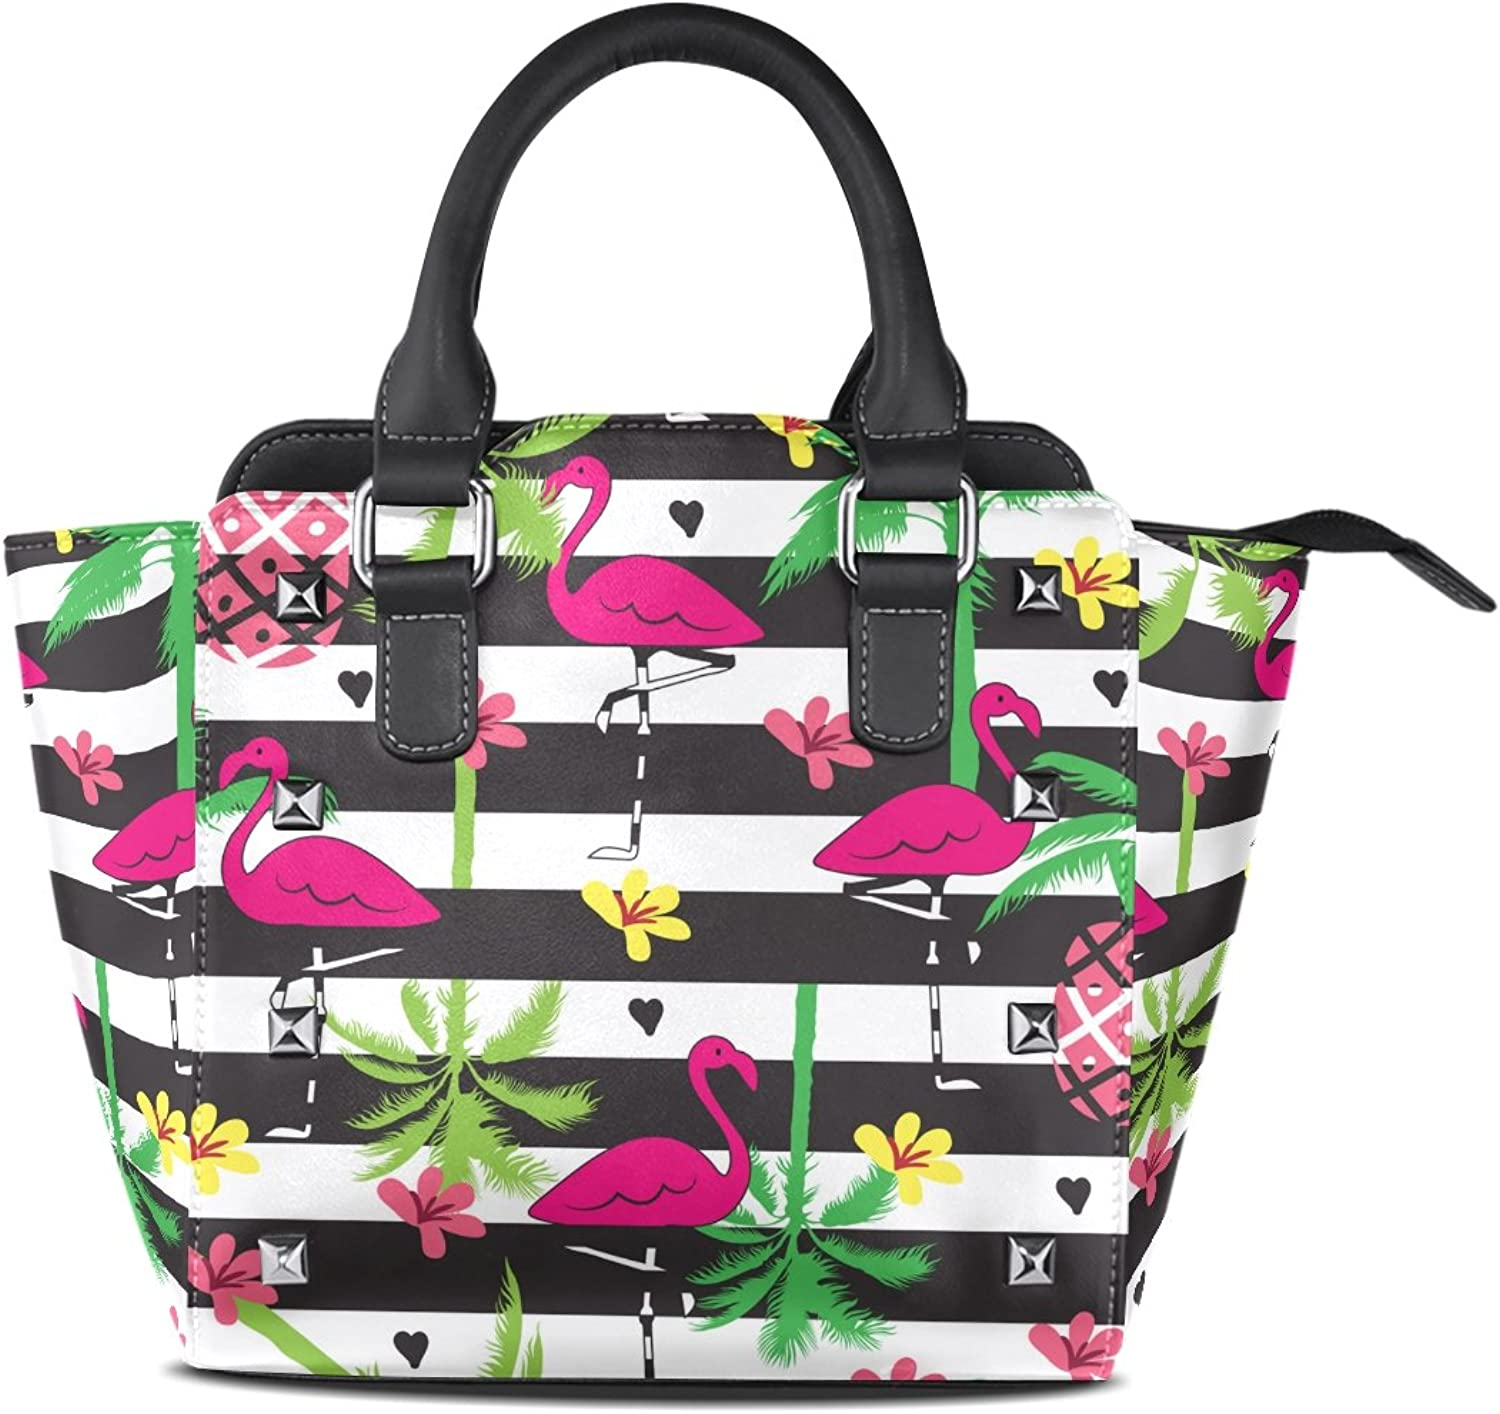 My Little Nest Women's Top Handle Satchel Handbag Summer Tropical Flamingo Palm Tree Flower Pineapple Ladies PU Leather Shoulder Bag Crossbody Bag